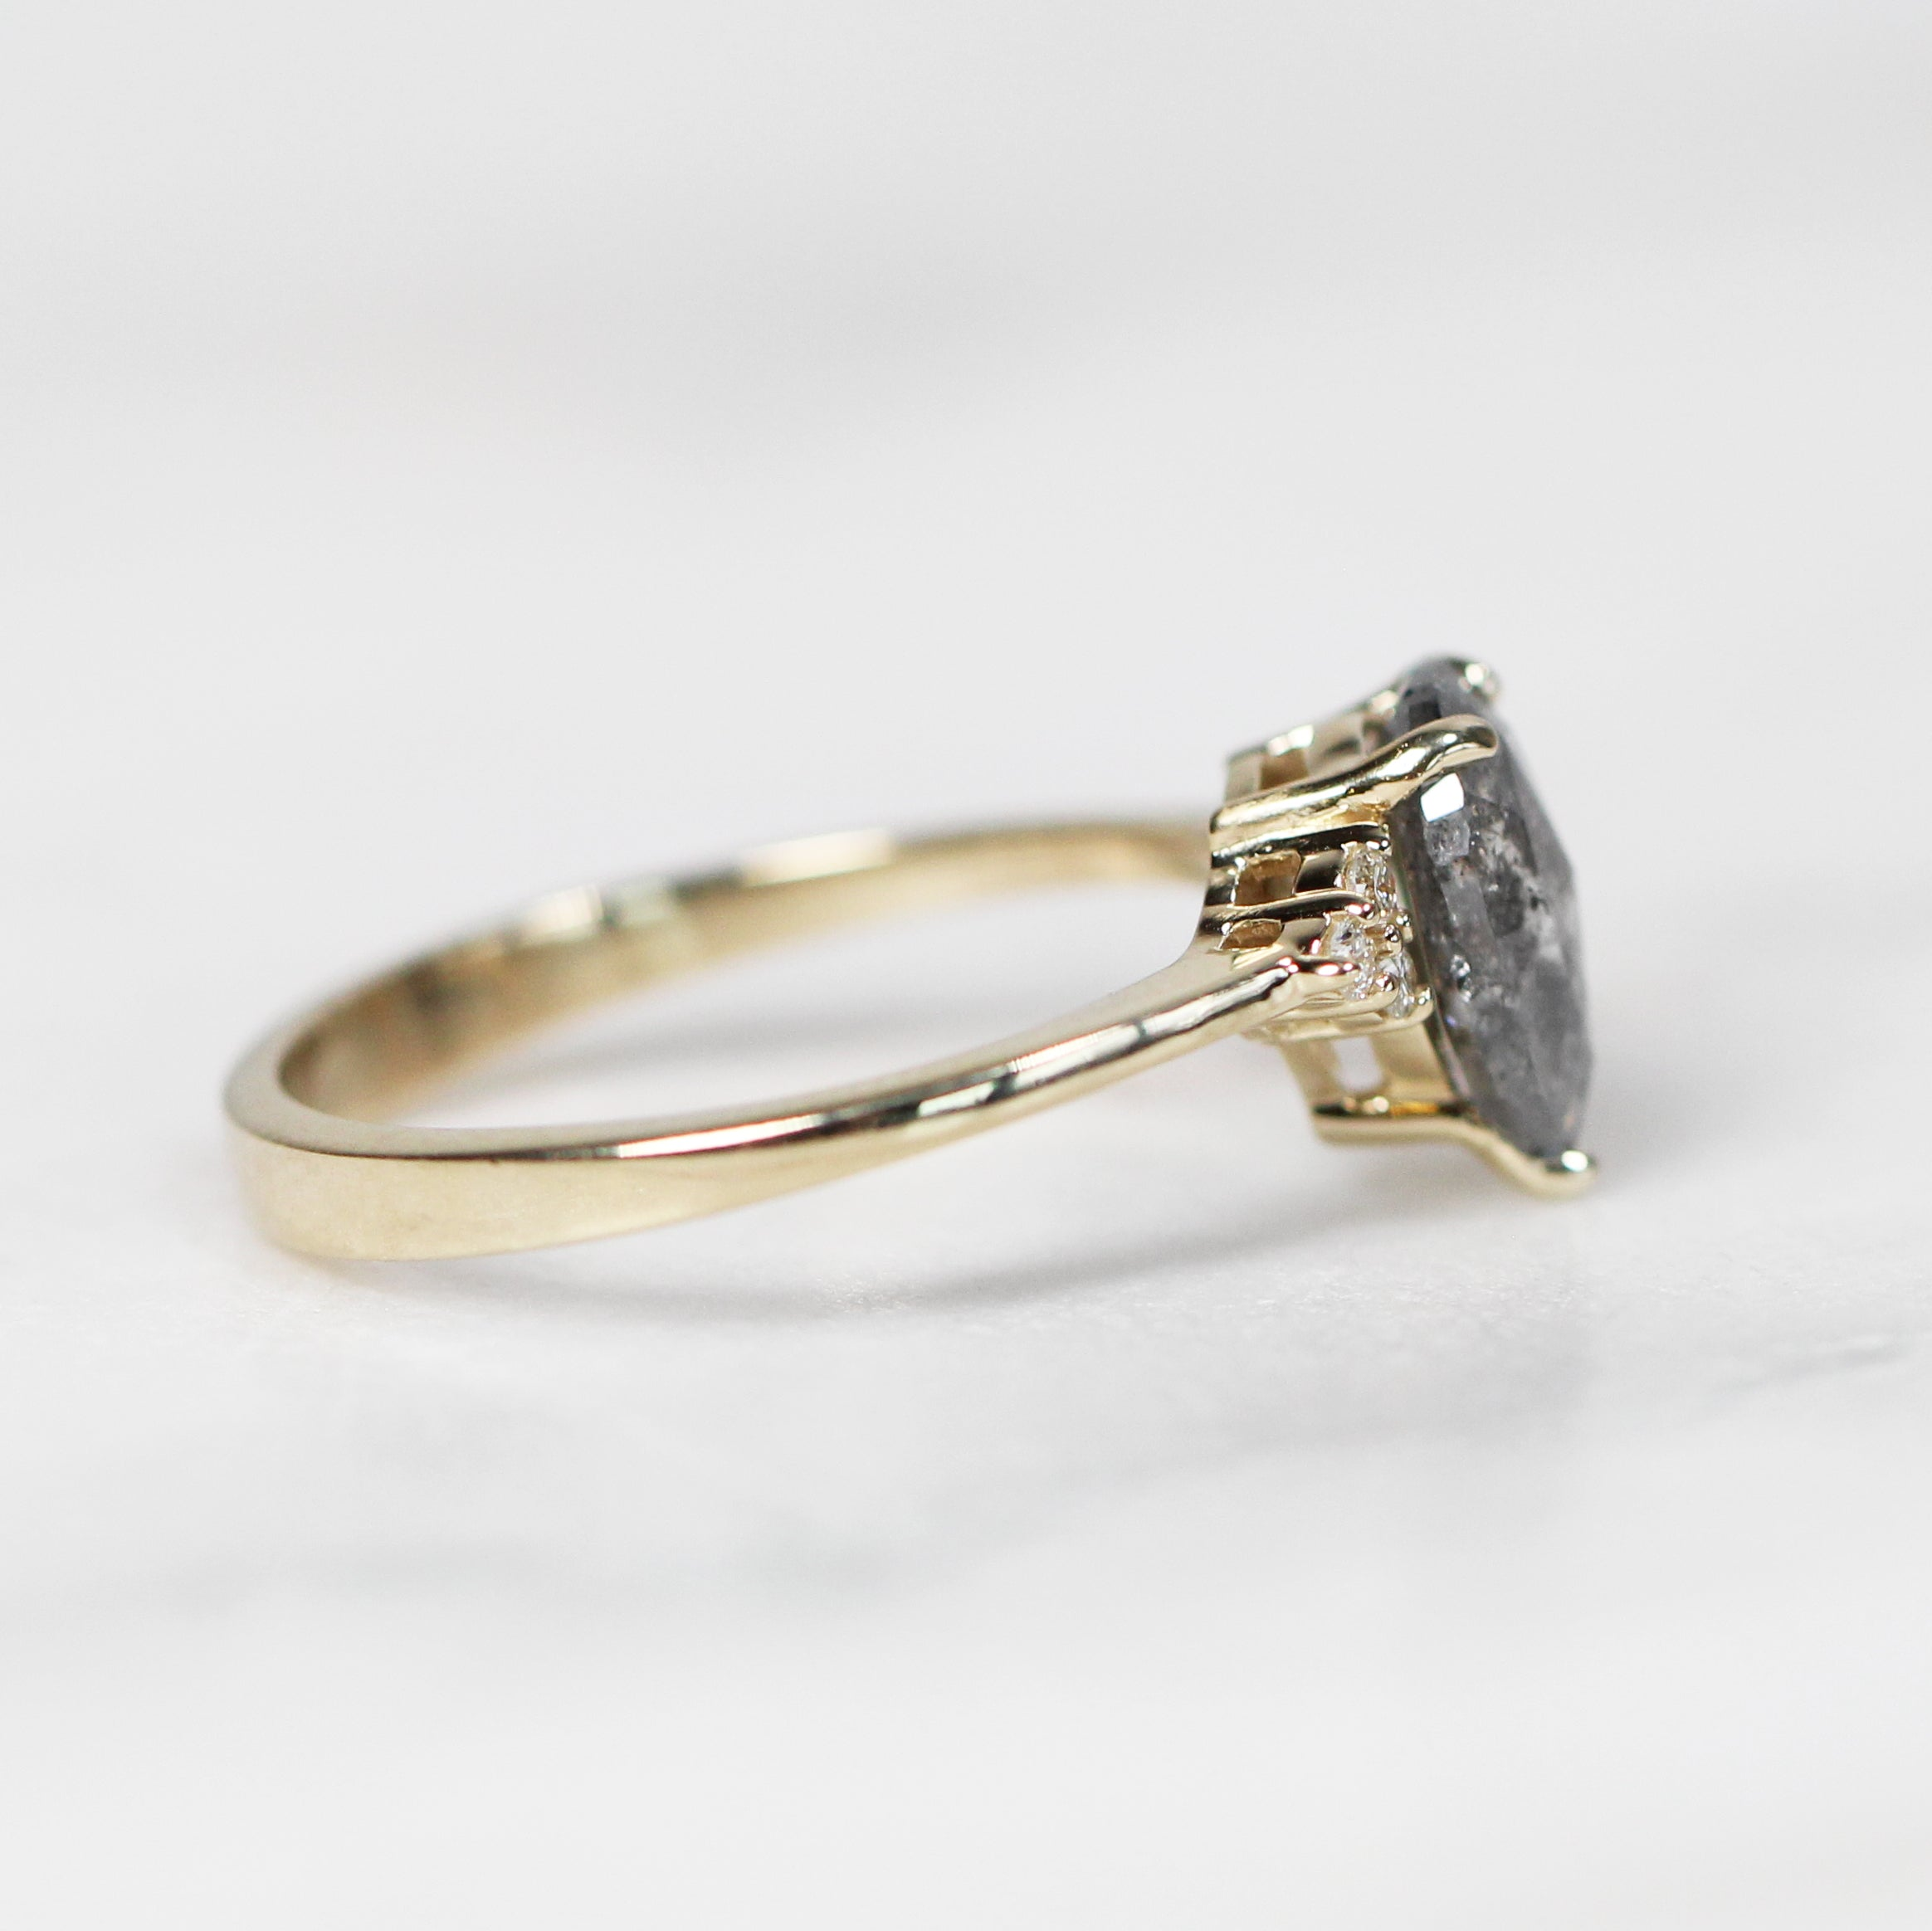 Imogene Ring with 1.41 Carat Pear Diamond in 14k Yellow Gold - Ready to Size and Ship - Celestial Diamonds ® by Midwinter Co.